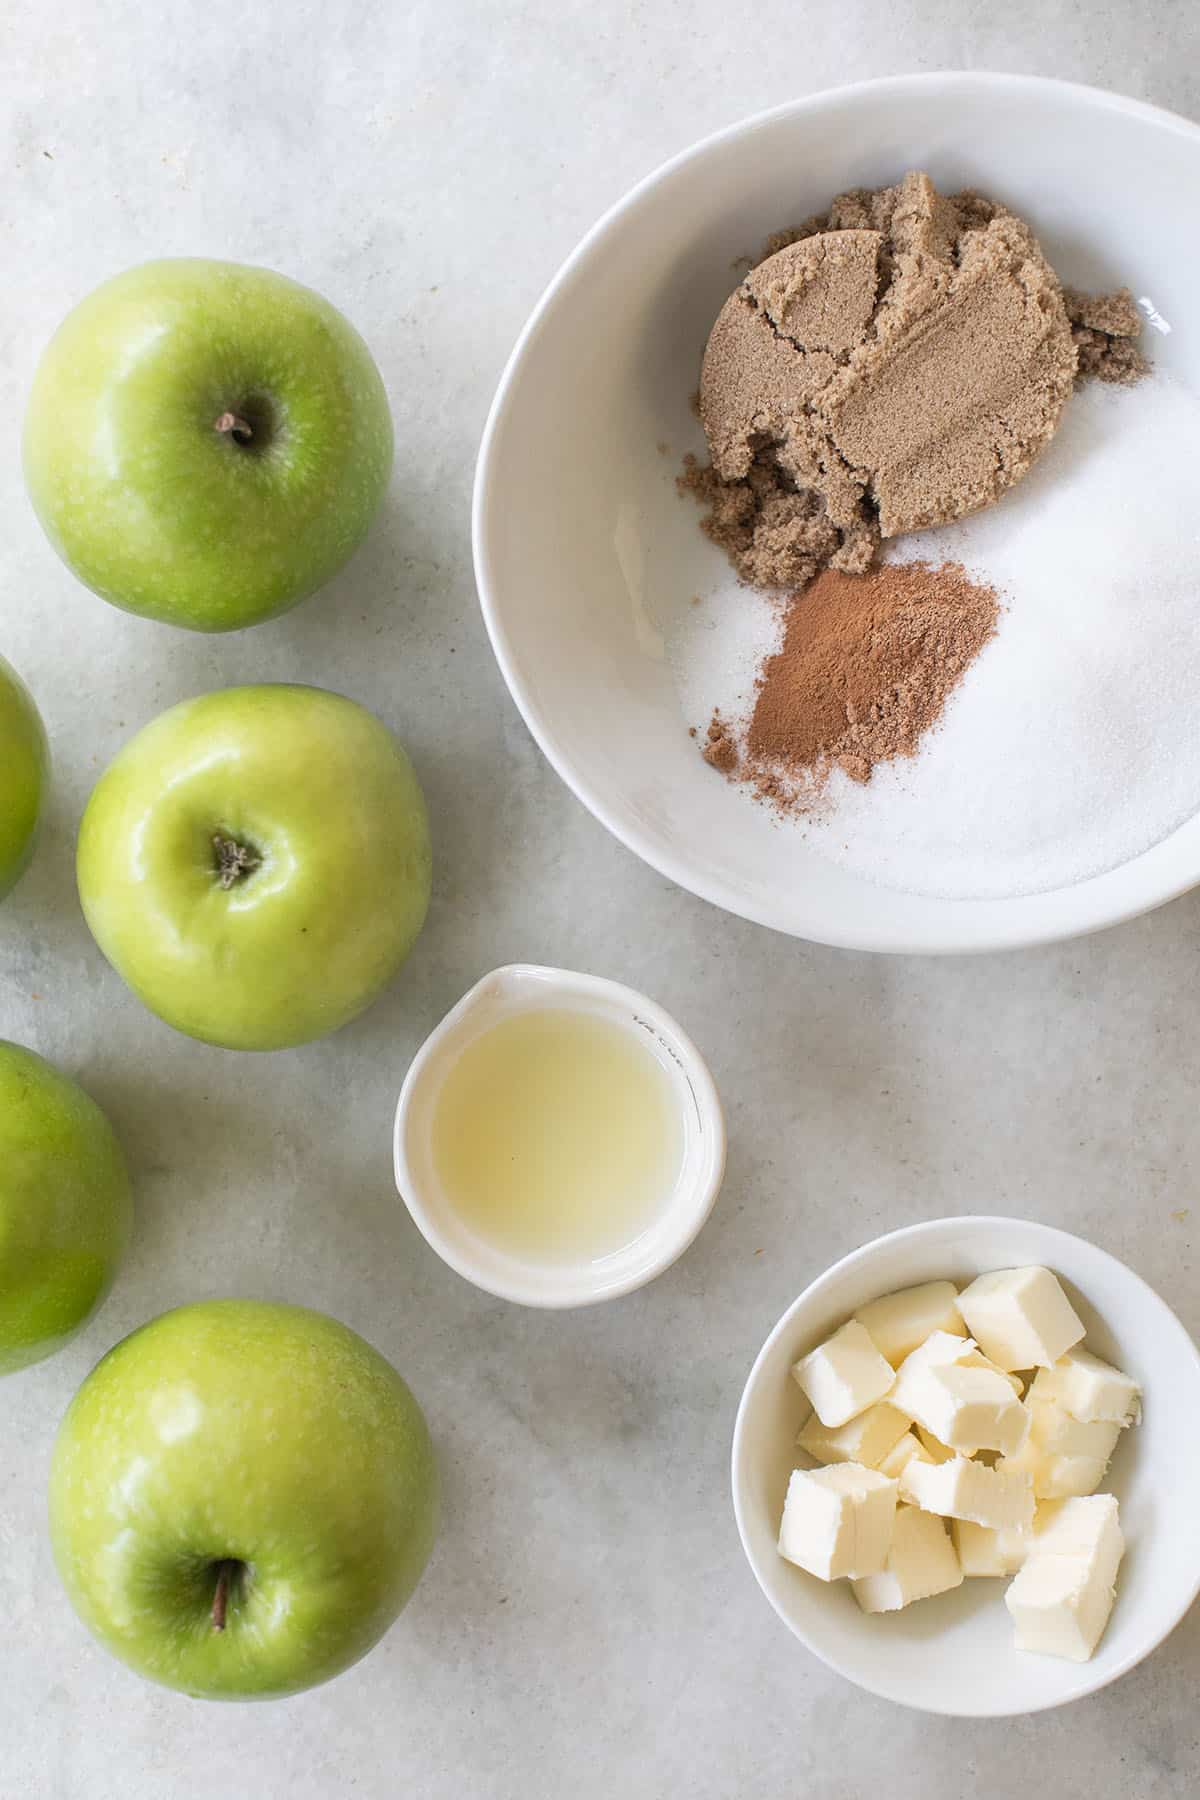 apples, lemon juice, spices, sugar and butter in bowls